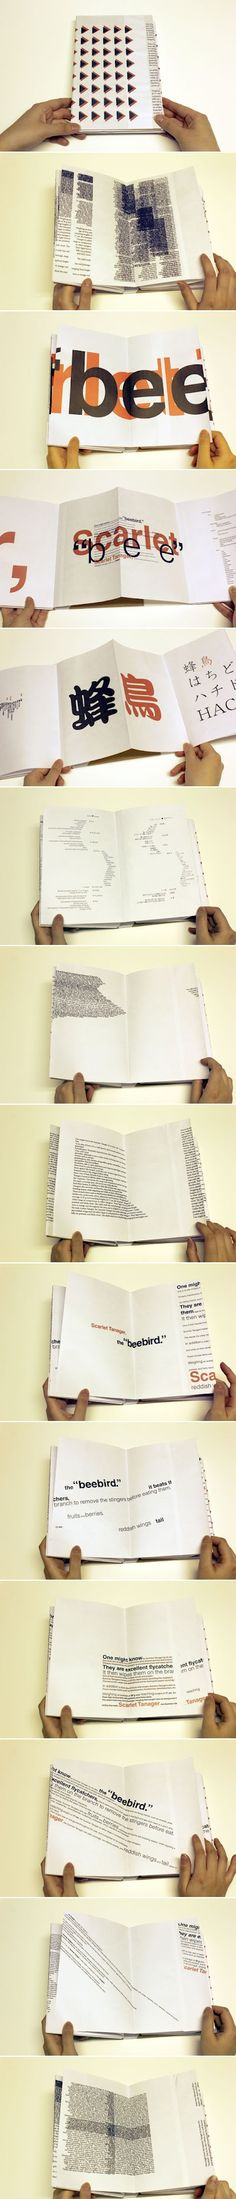 Book Design: Experimental Typography